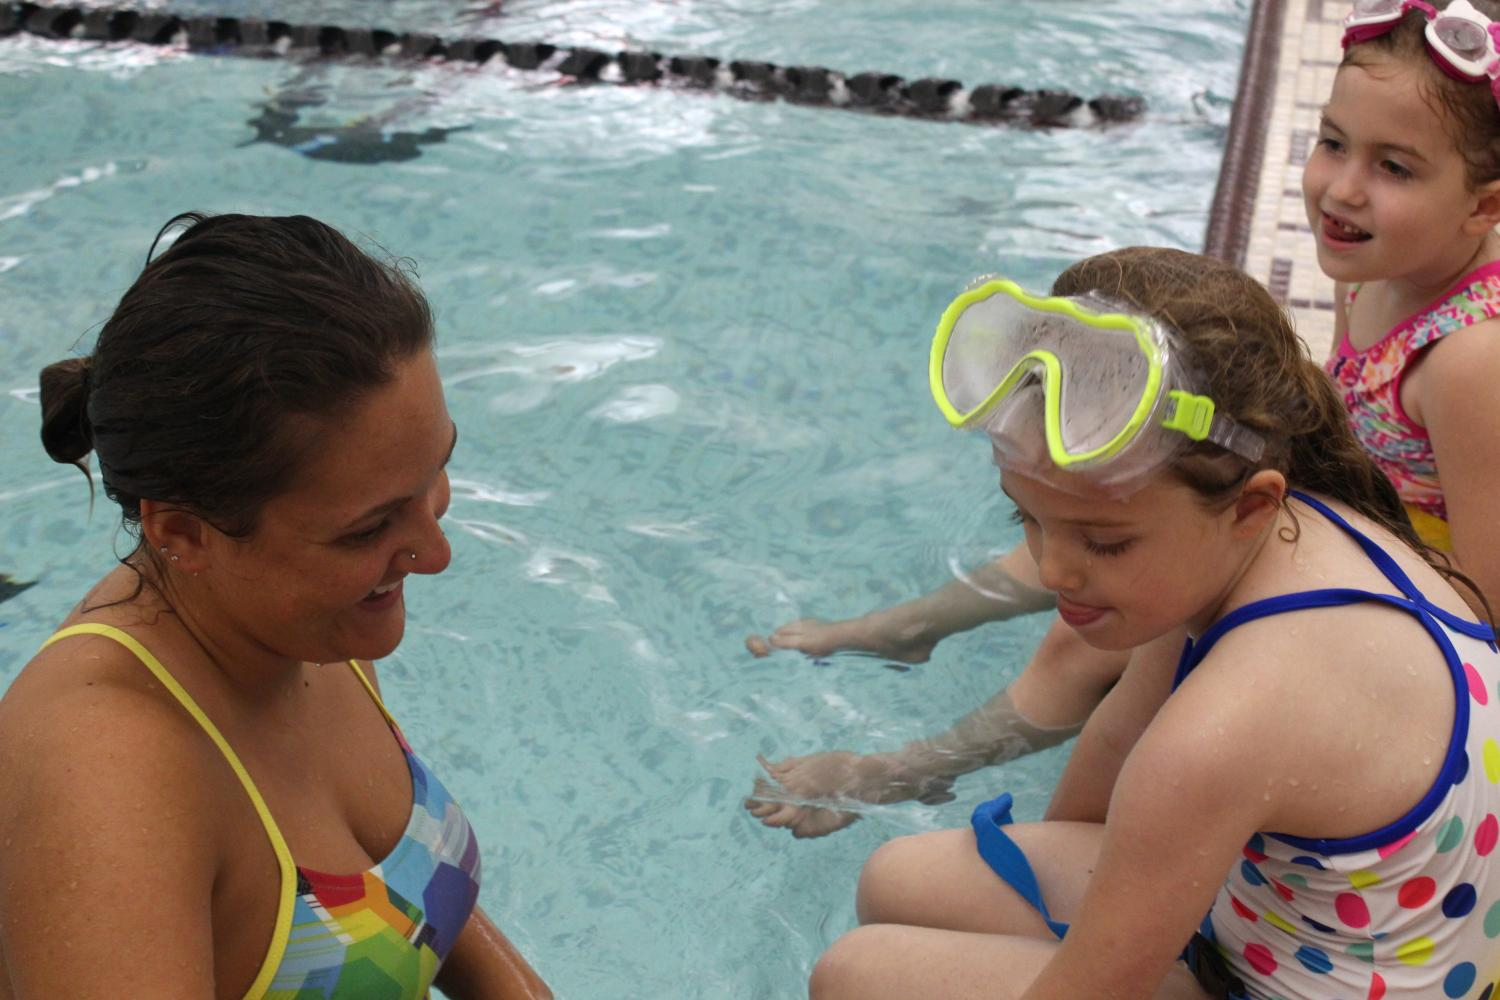 Swim+instructor+Emily+Kolb+talks+to+her+students+about+the+new+skills+they+are+going+to+be+taught+during+that+night%27s+class.+Kolb%E2%80%99s+students+learn+how+to+float+on+their+back+and+other+basic+swim+strokes.+